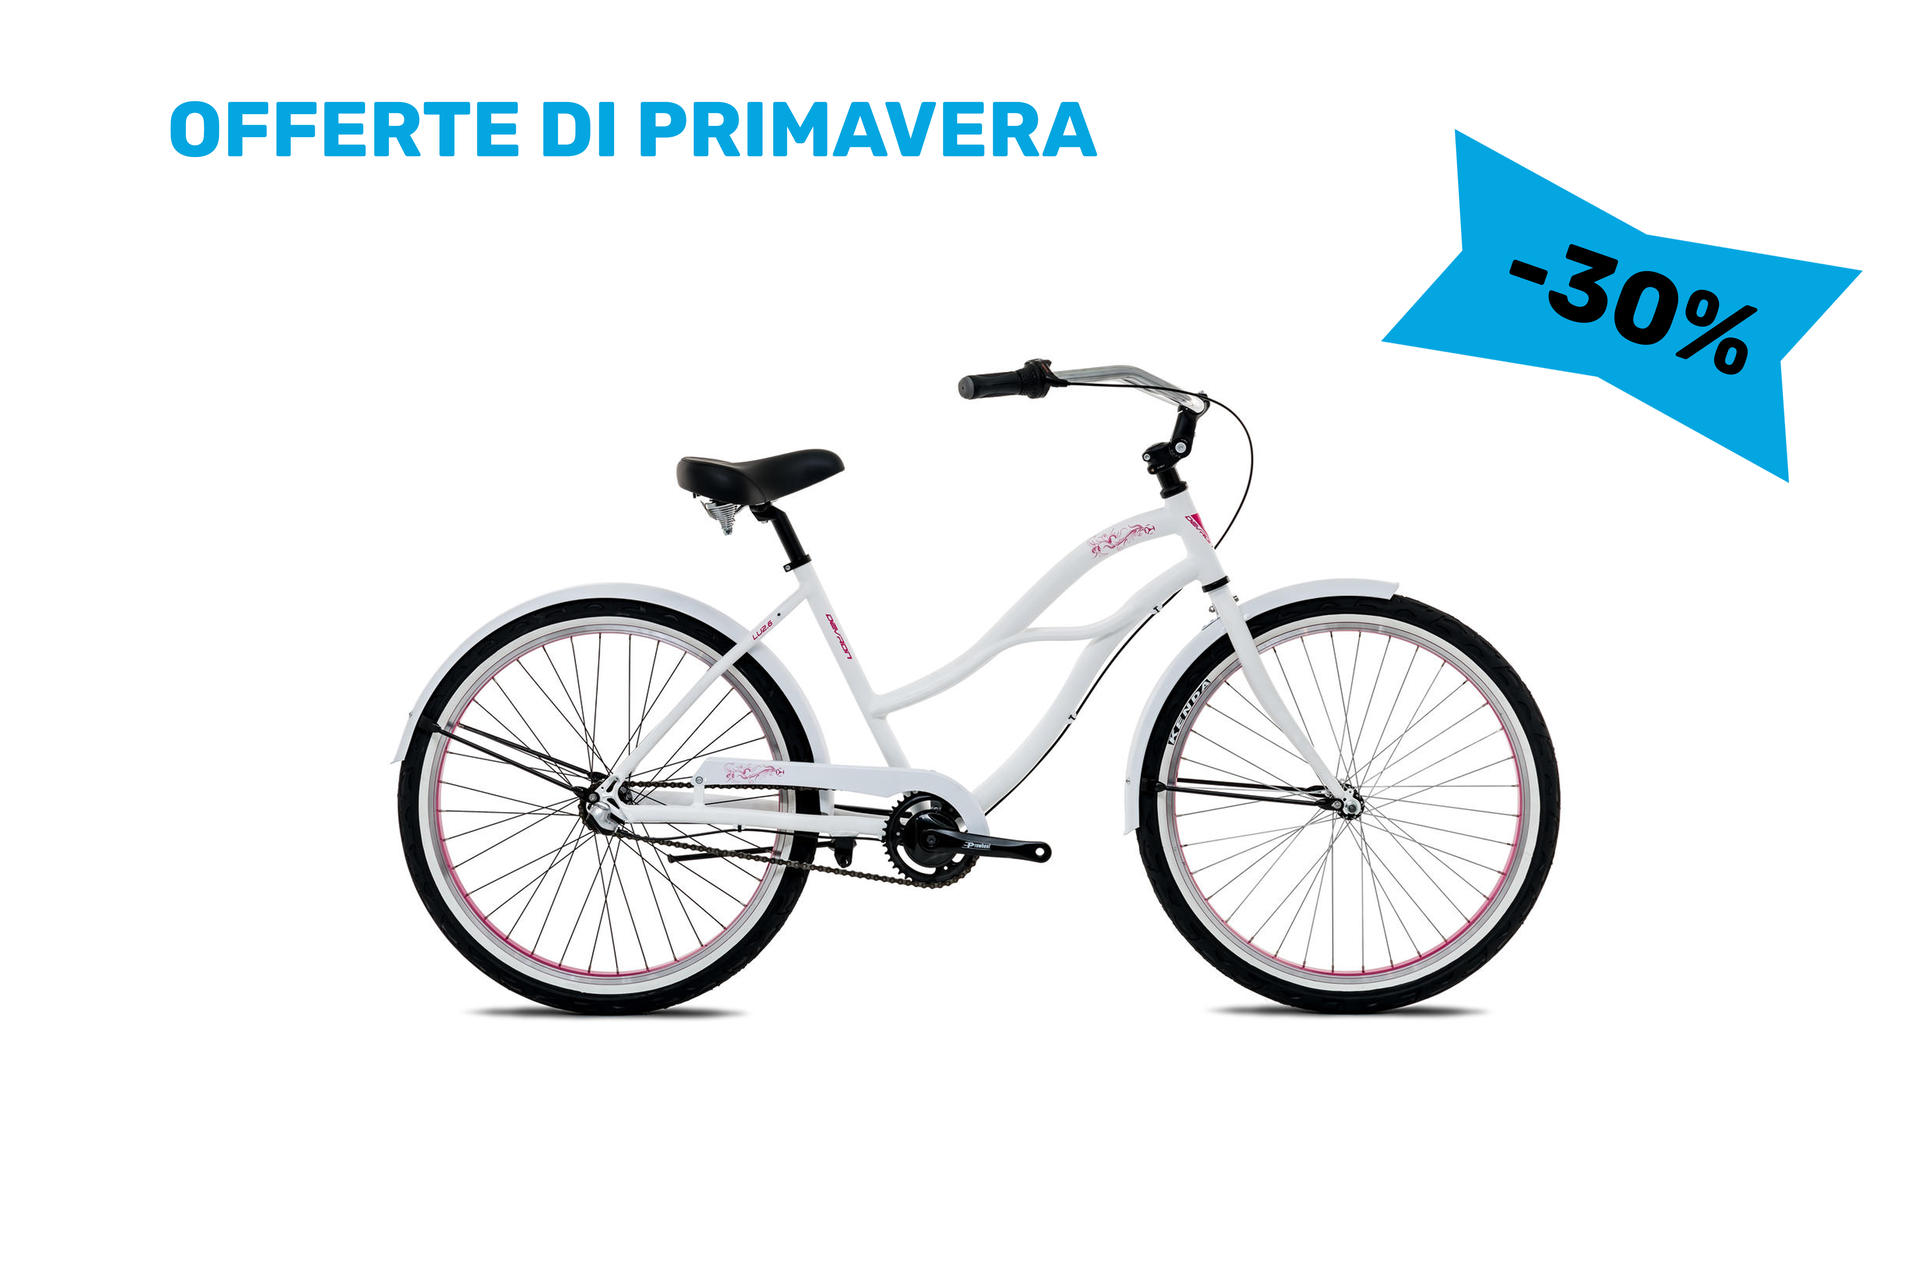 Bicicletta cruiser da donna Devron Lady Cruz.LU2.6 Ice White 445 mm